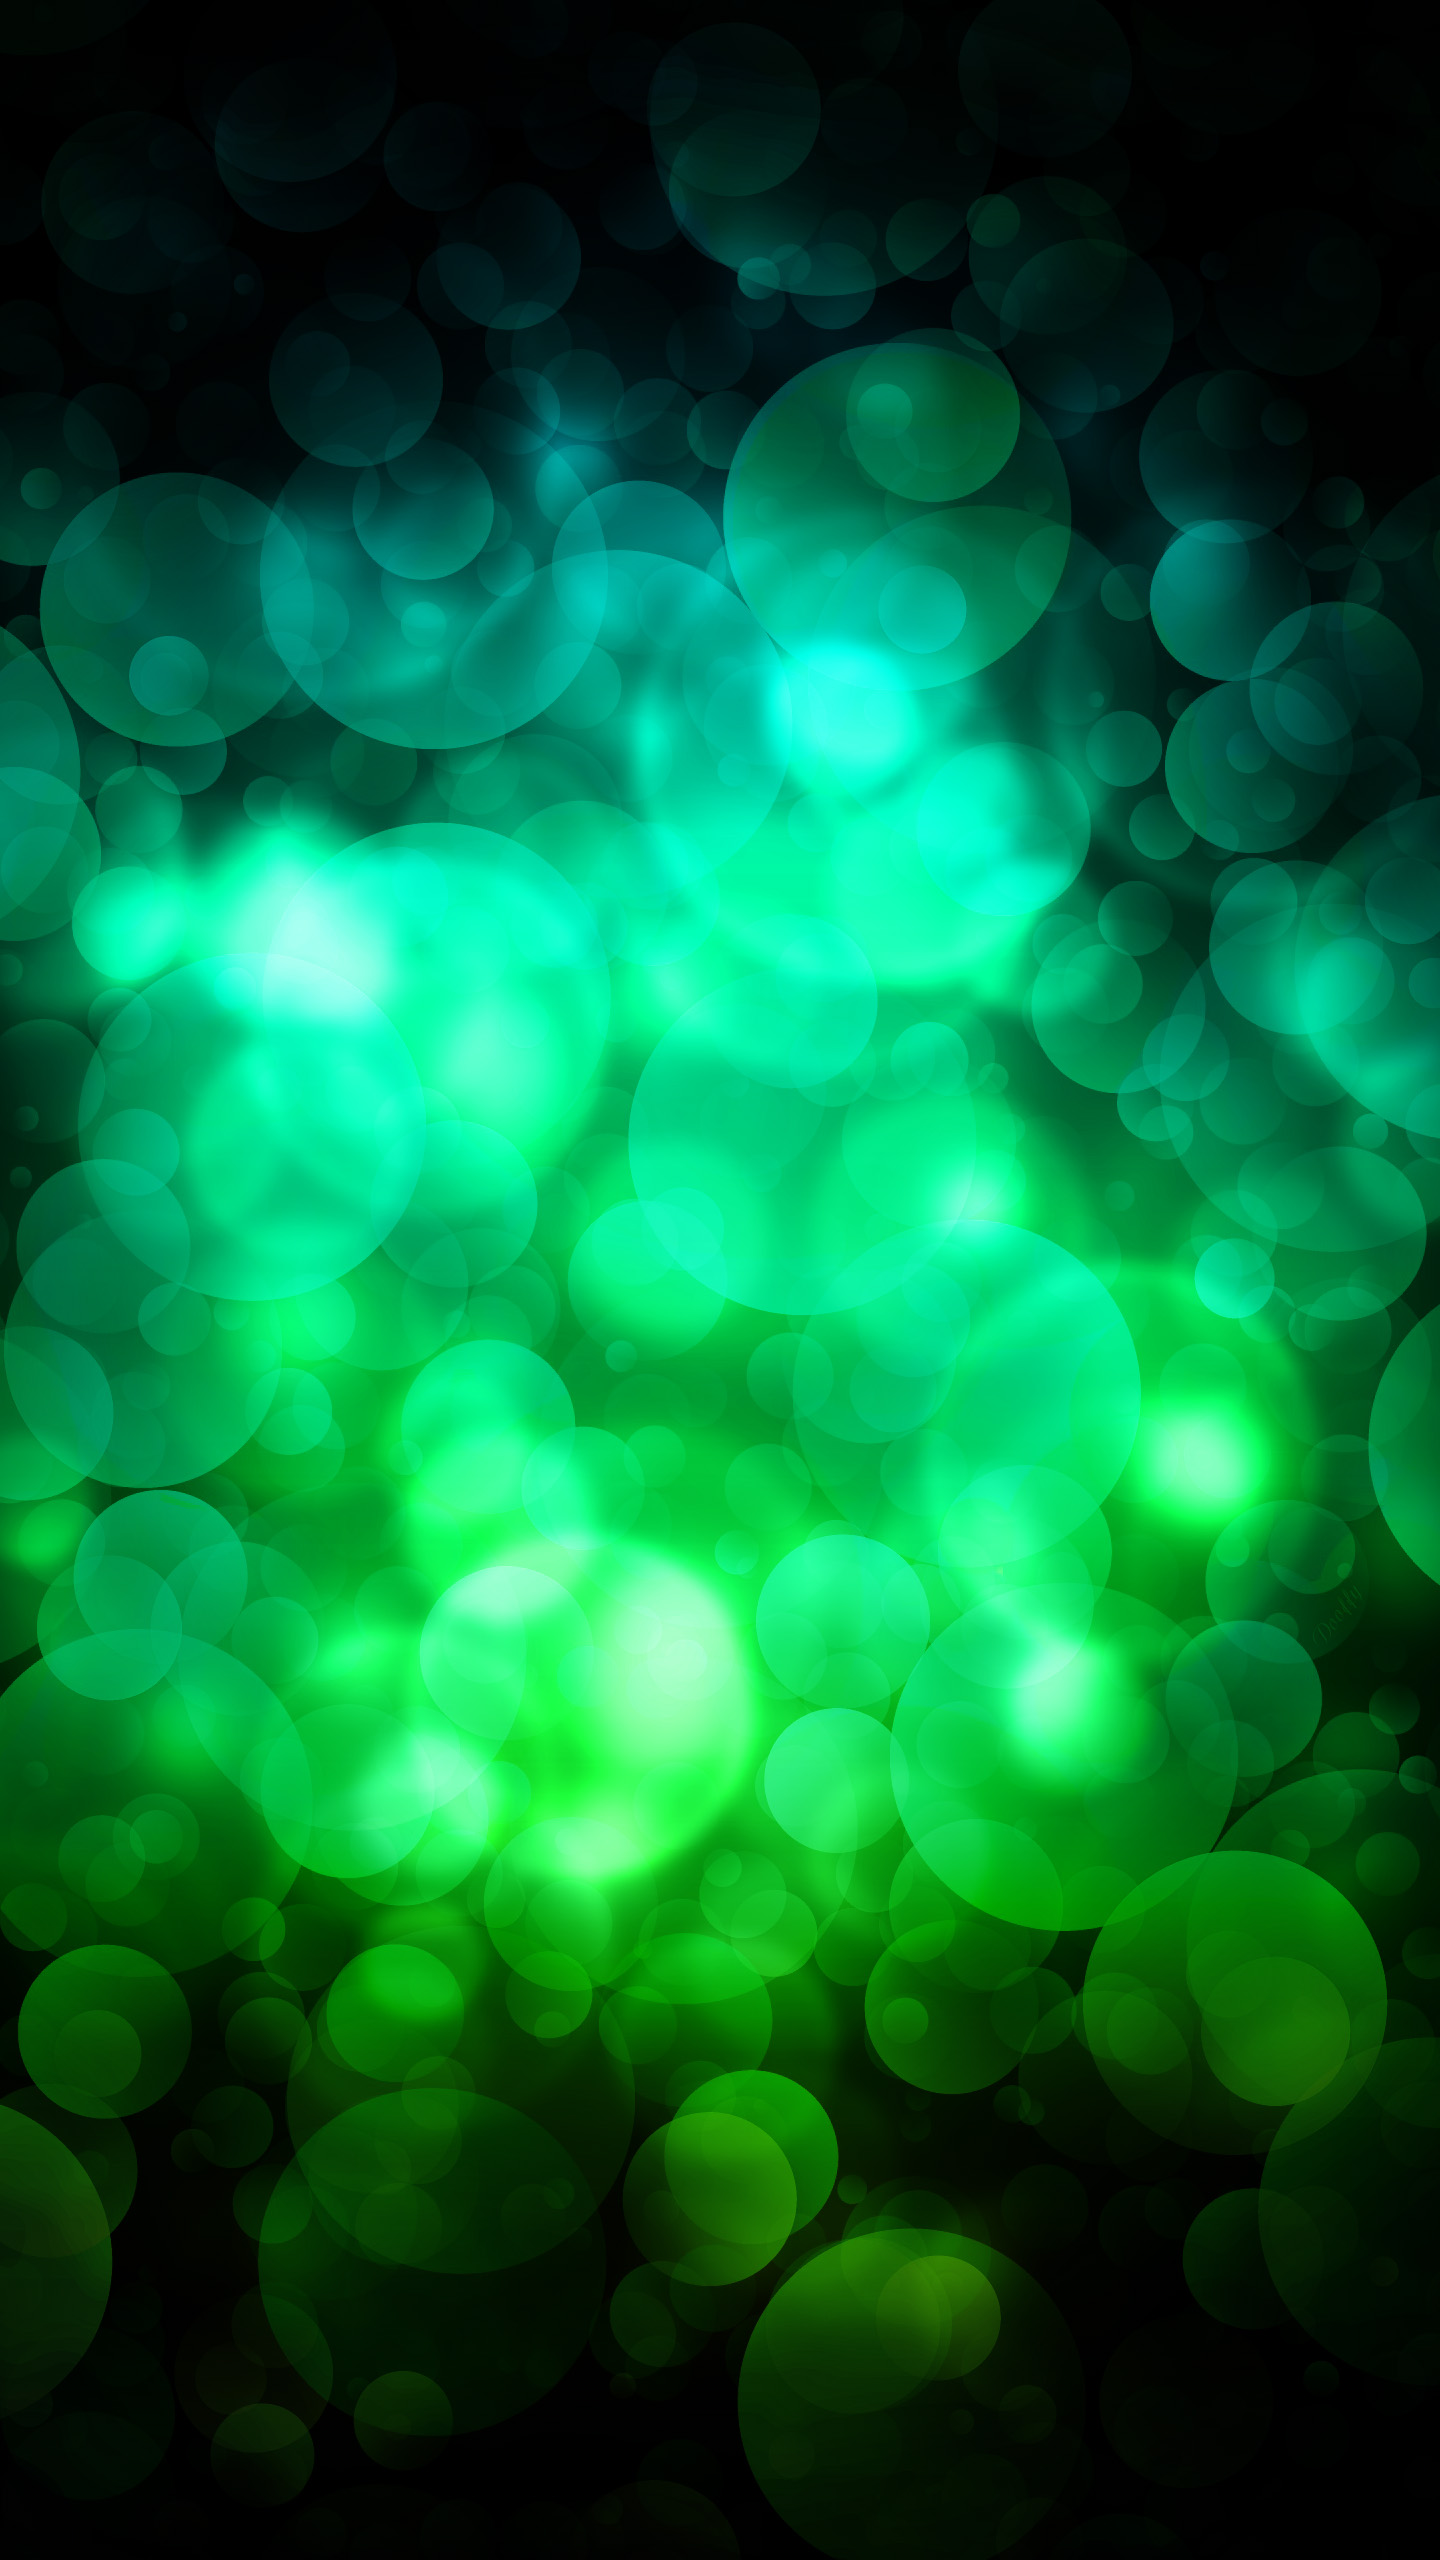 quad hd mobile phone wallpapers 1440x2560 green circles 1440x2560